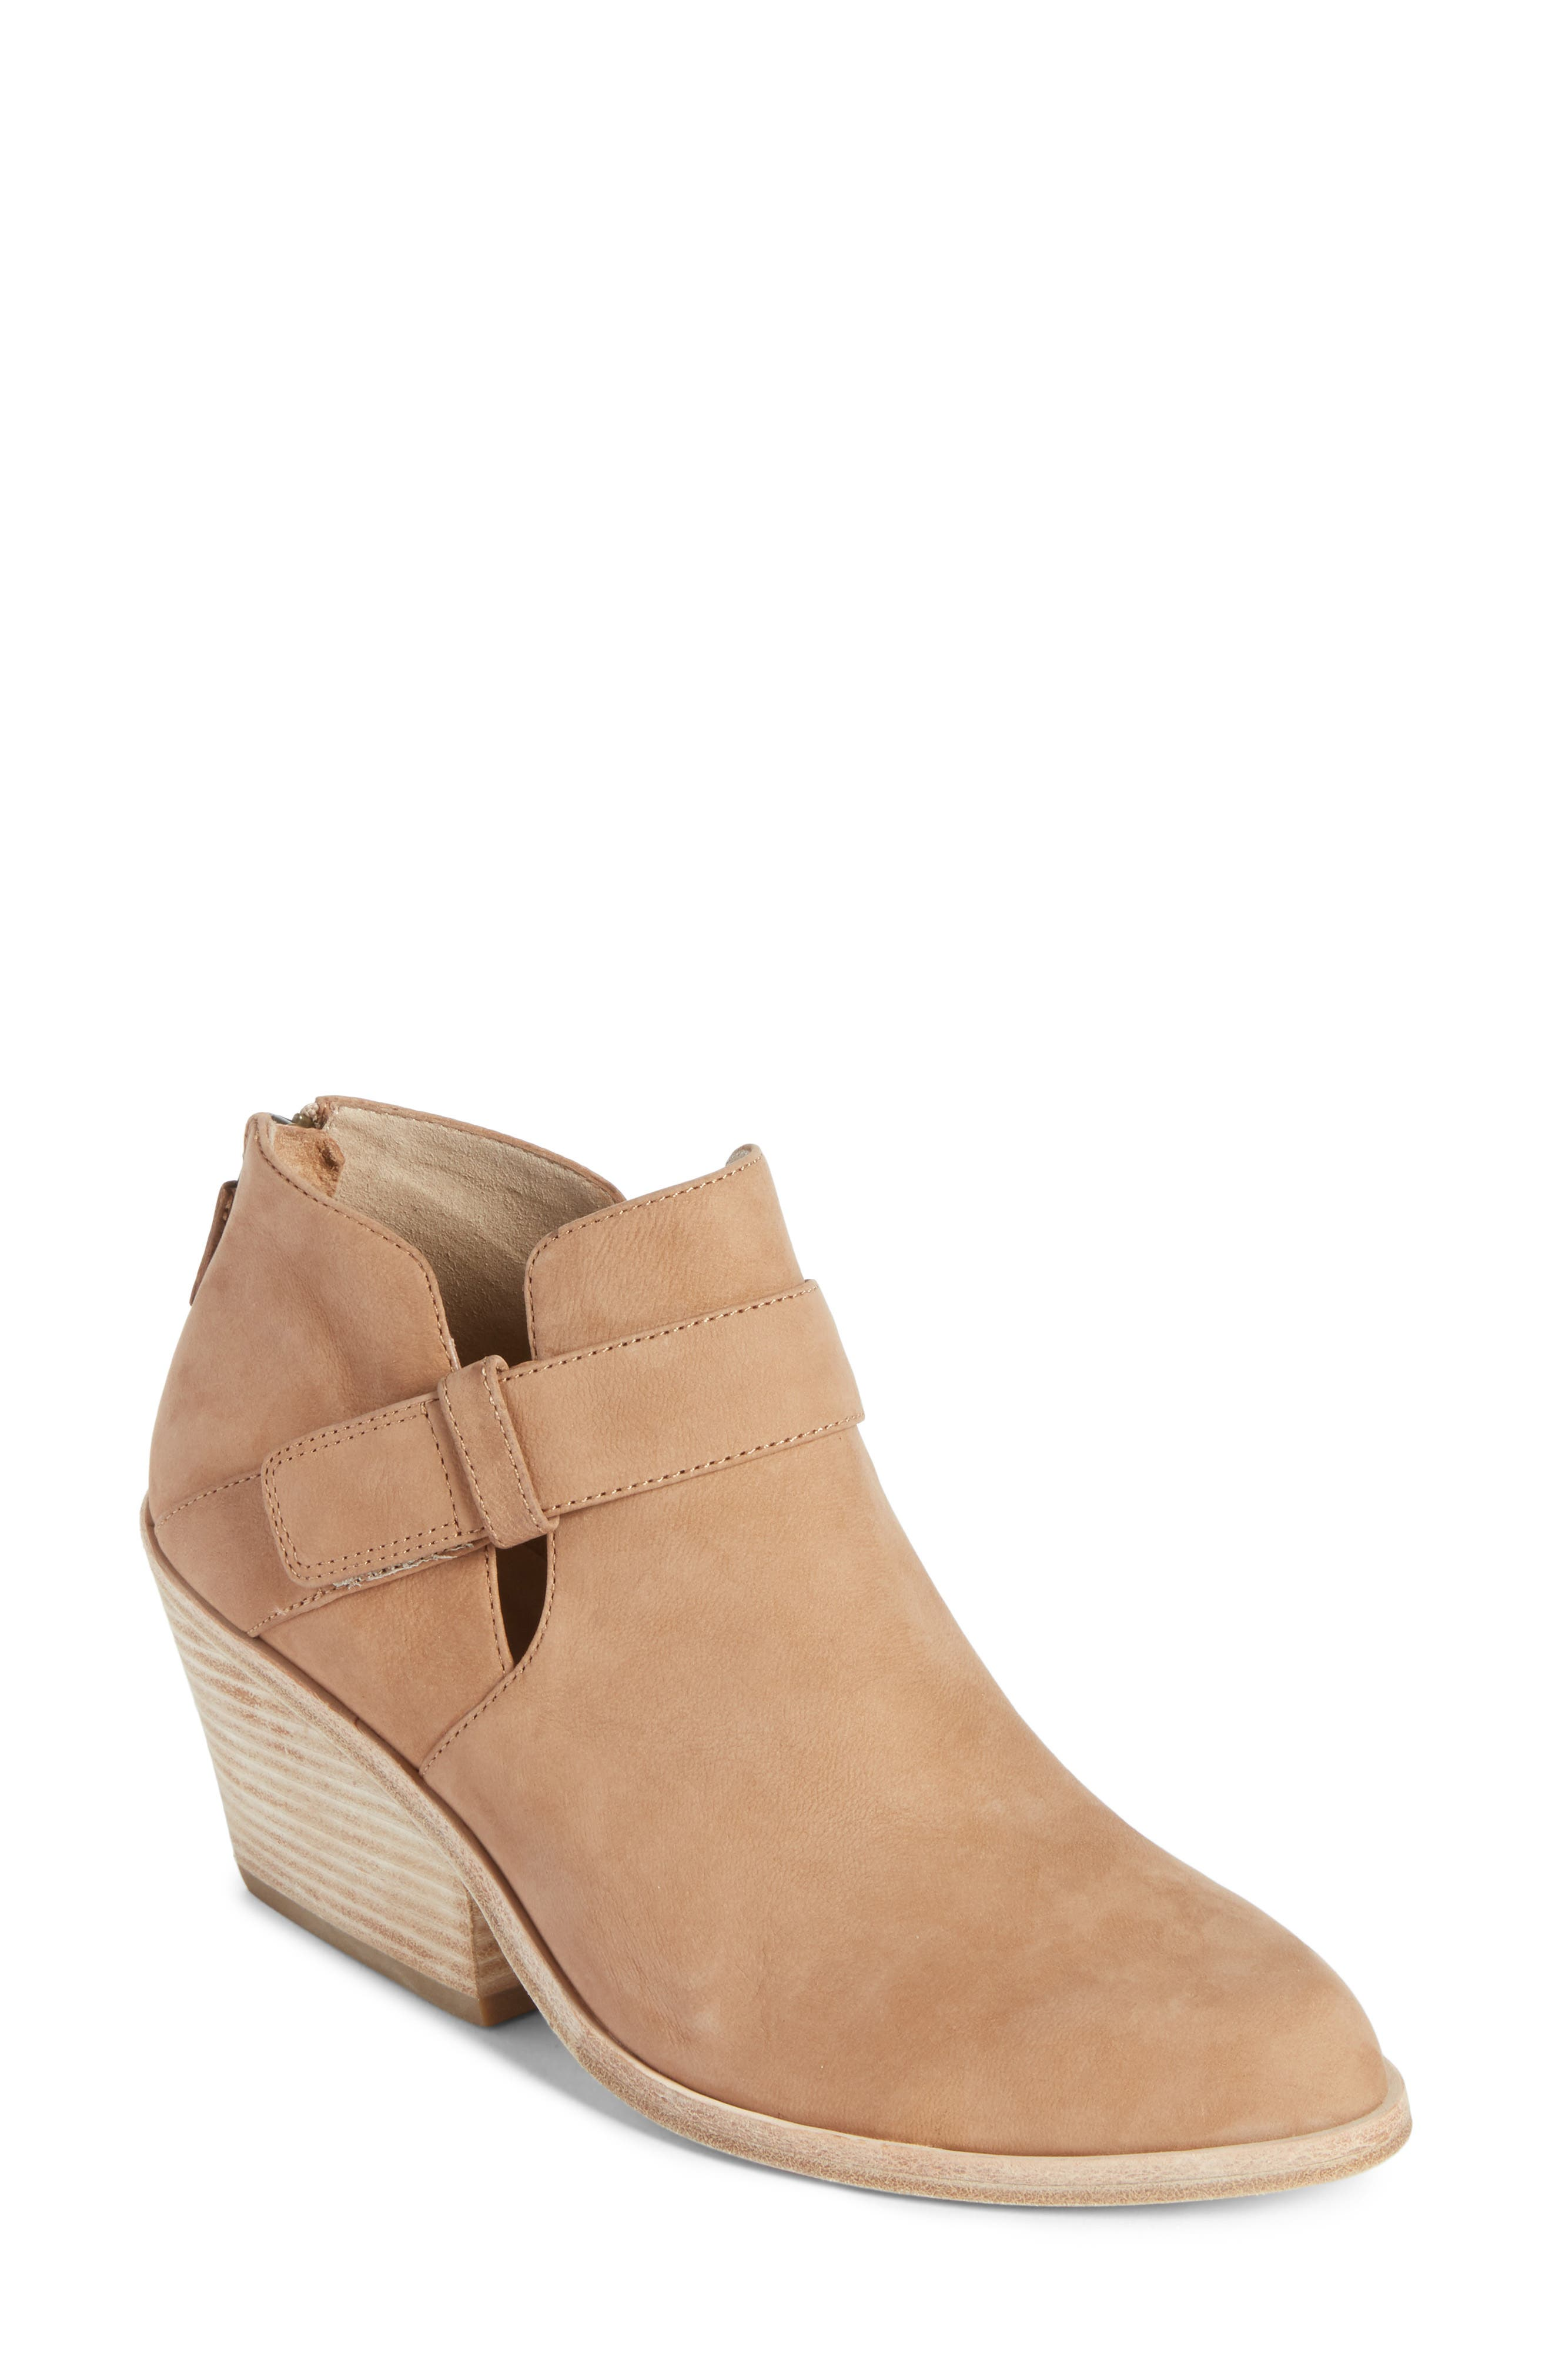 Ives Bootie,                         Main,                         color, WHEAT NUBUCK